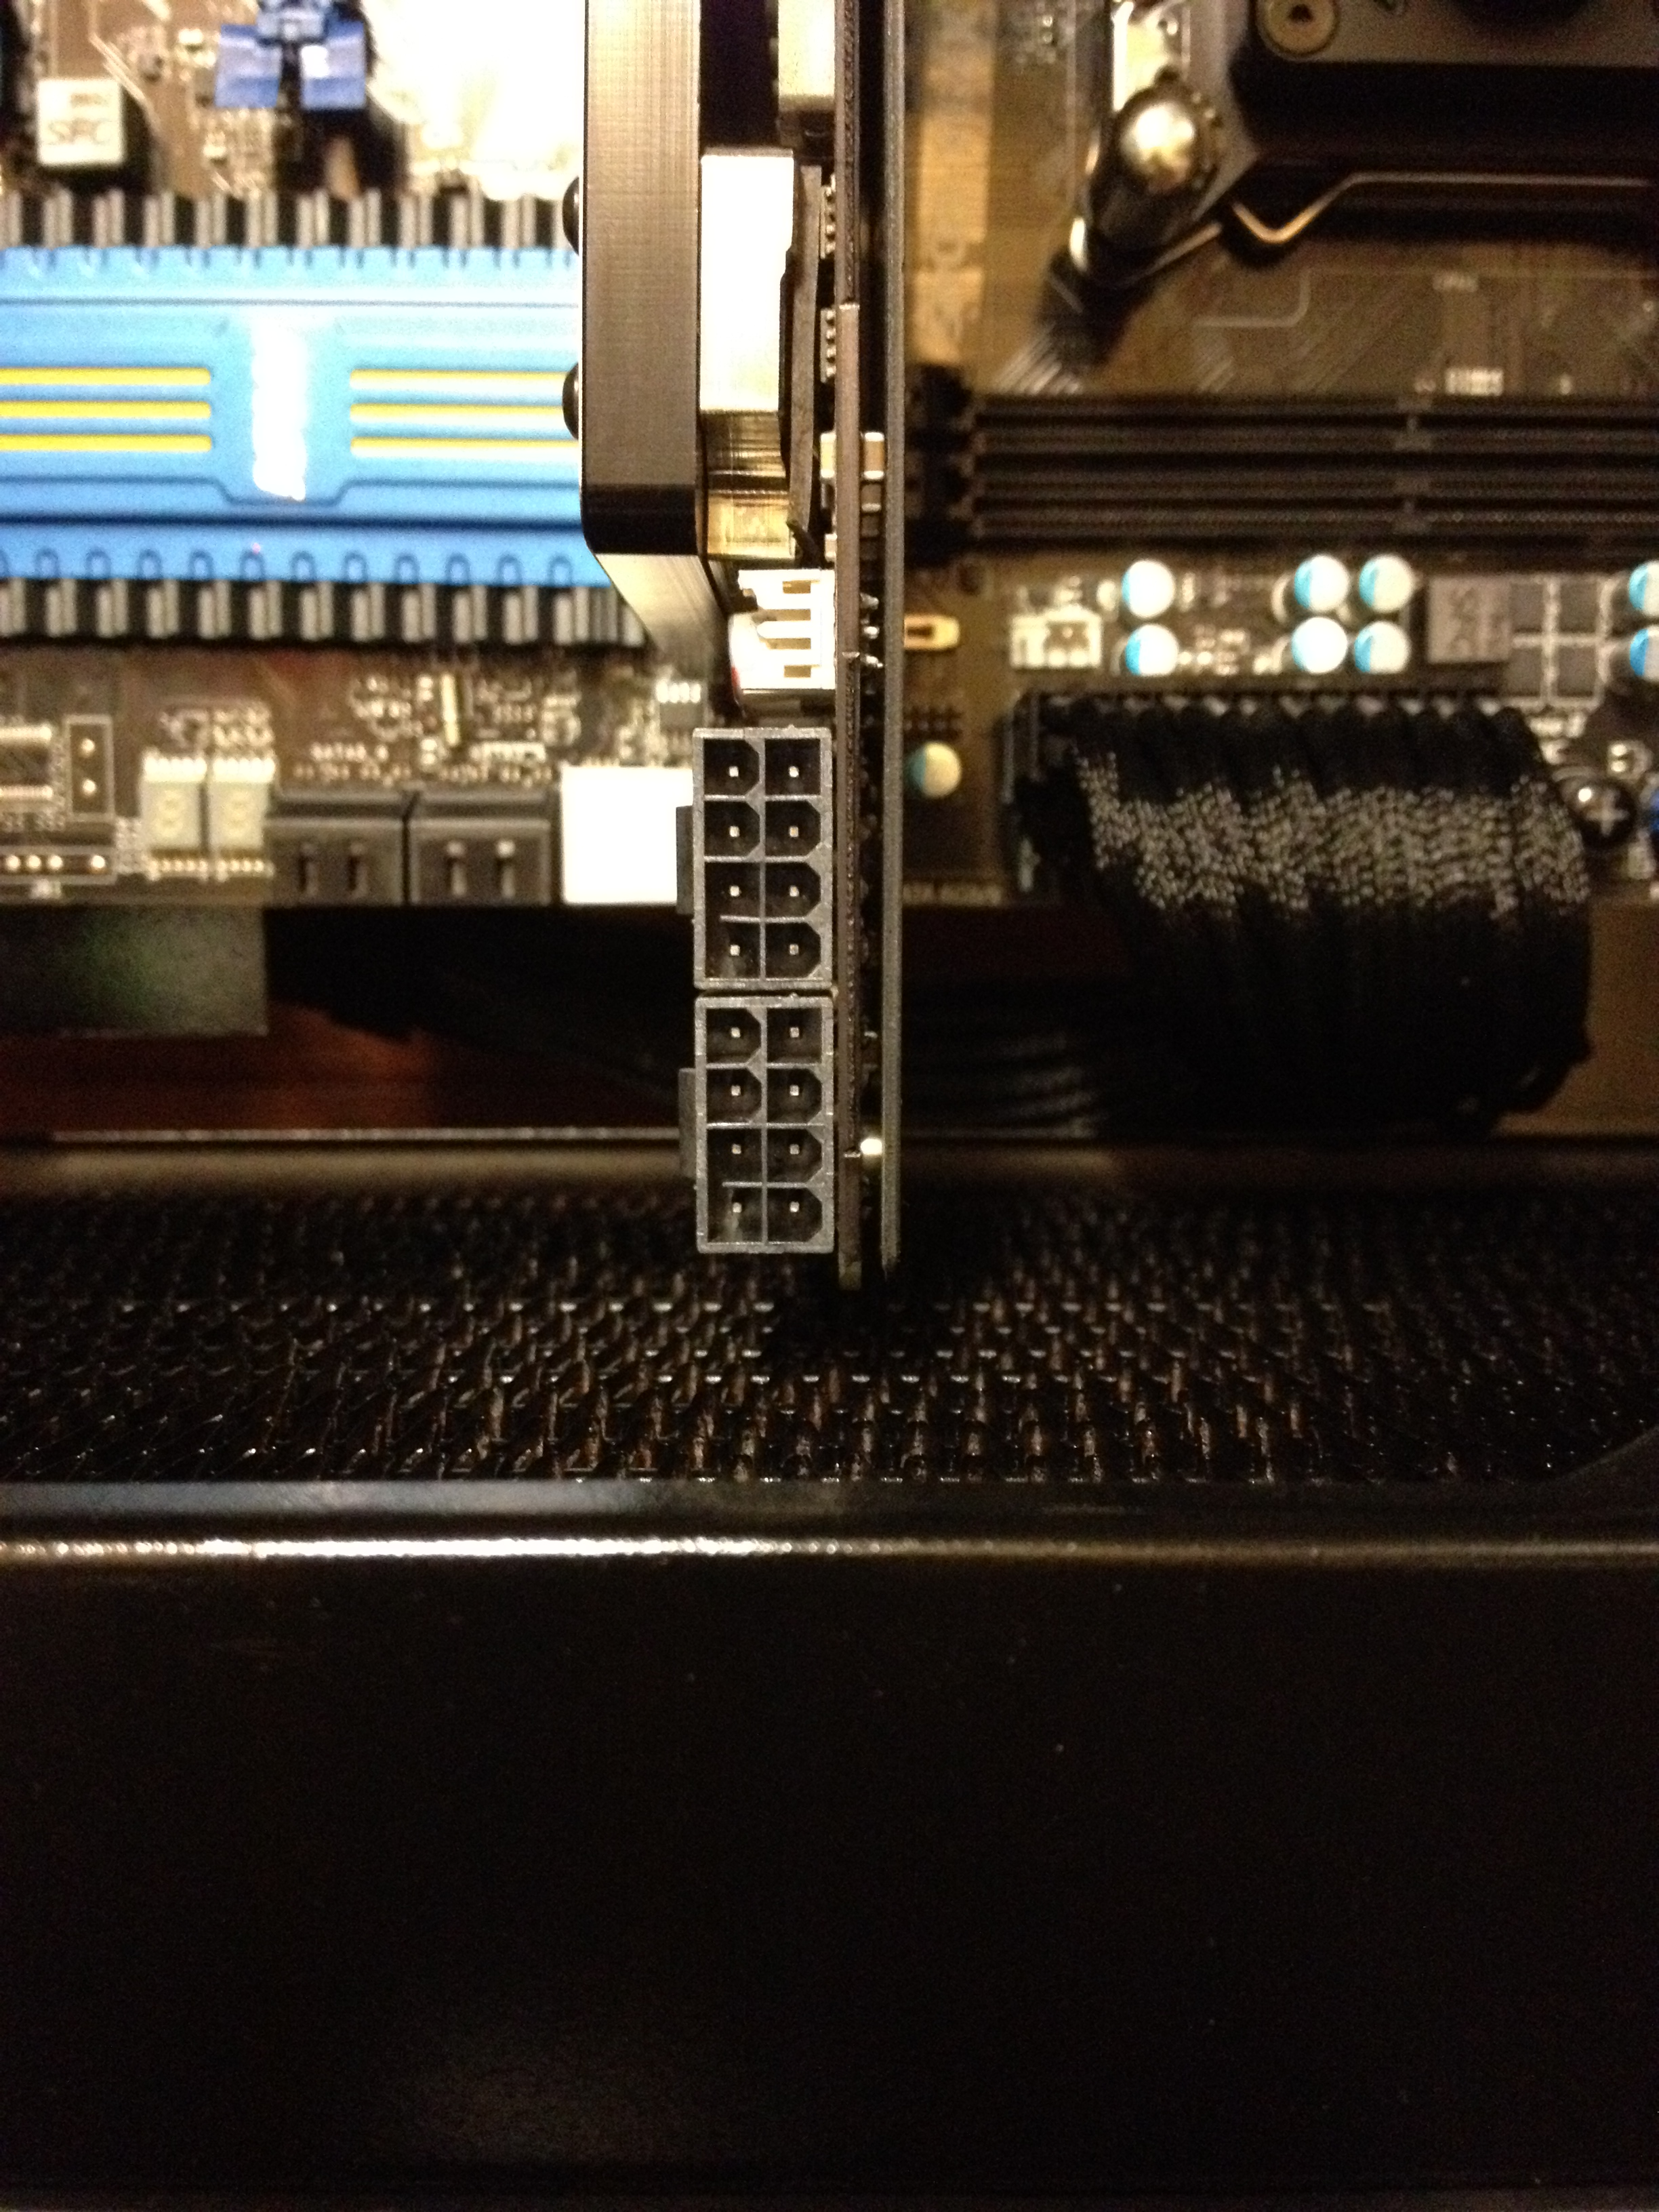 gpu = matrix hd 5870 = 28,75cm.   Between radiator and case Max. 27,5 cm or +/- 11 inch.  this would just fit  !!